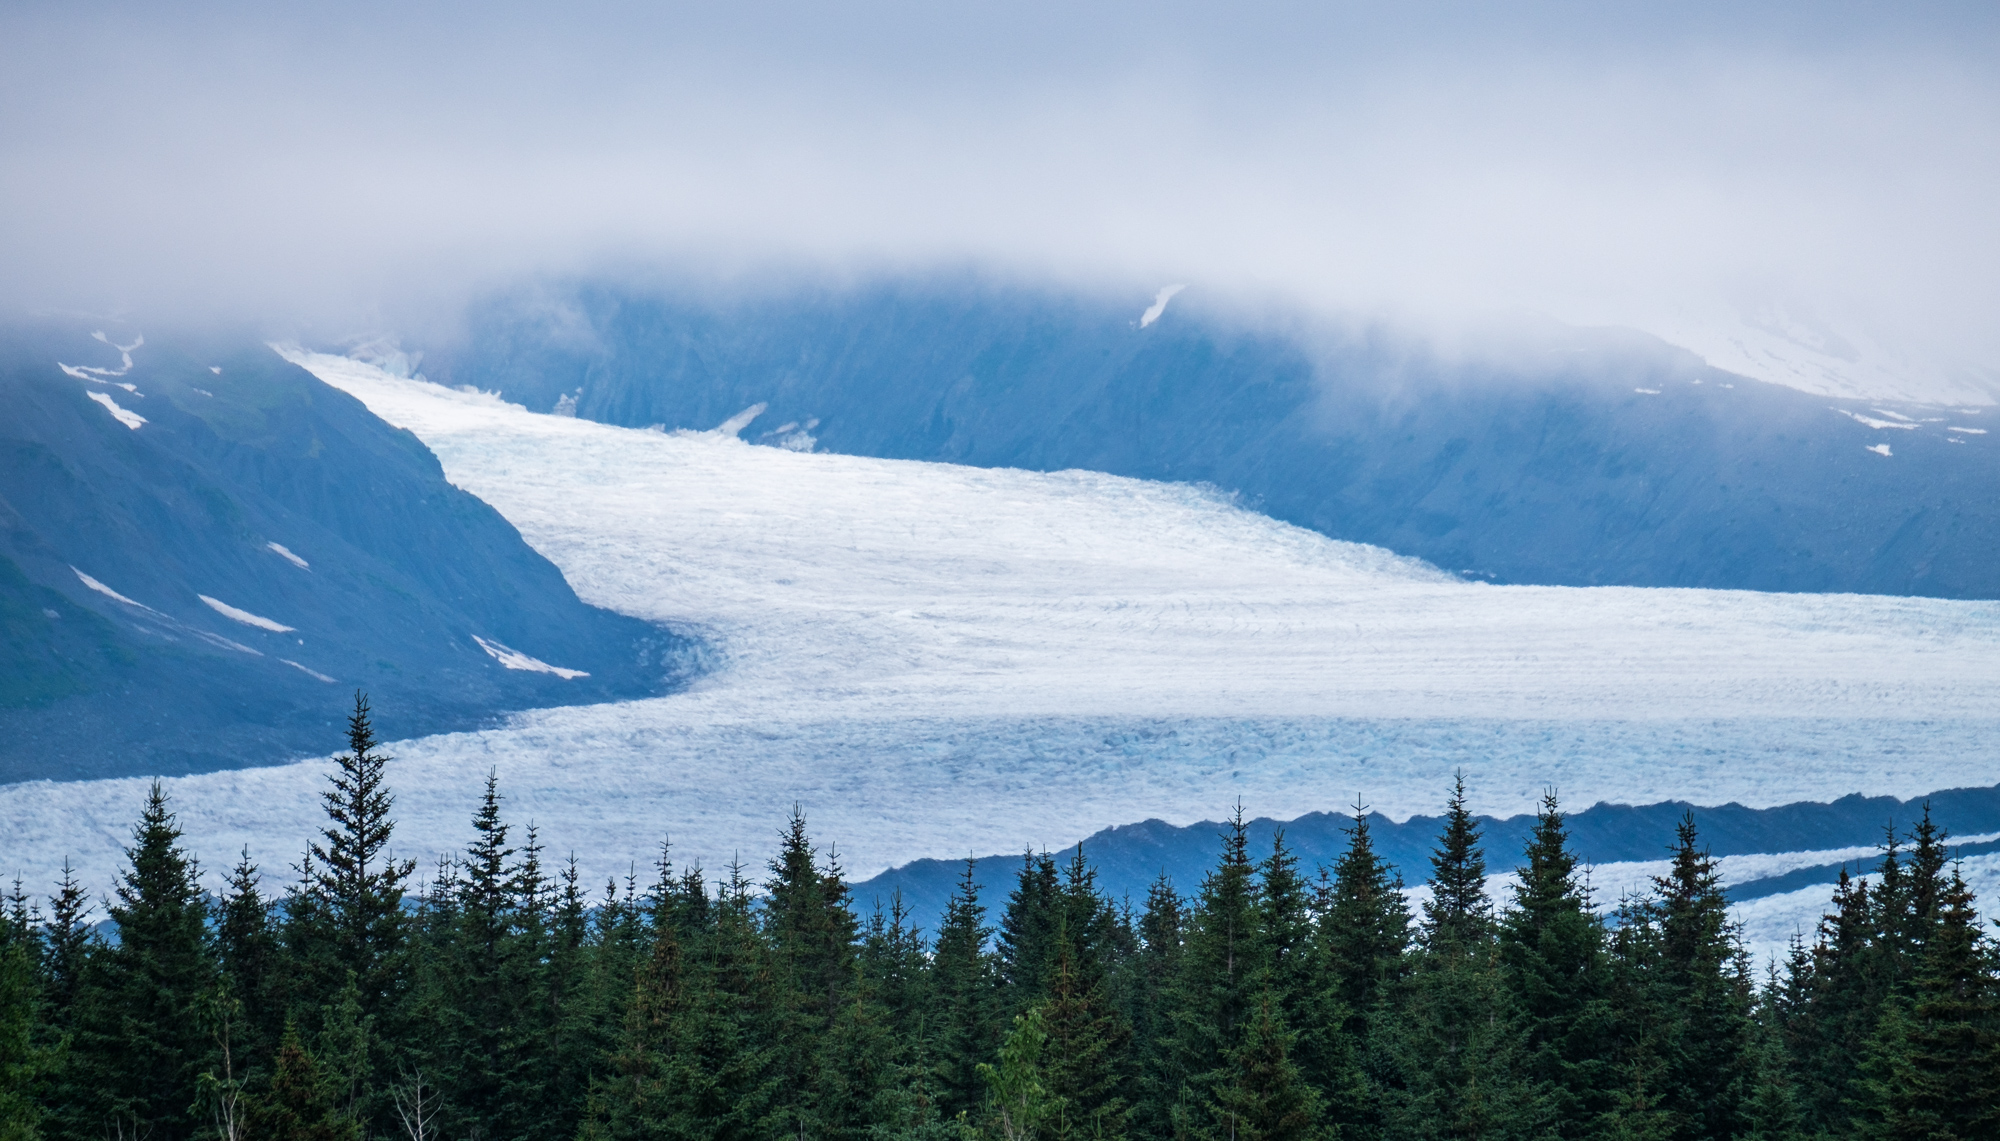 Bear Glacier, an offshoot of the Harding Icefield. It is the largest glacier in the park.